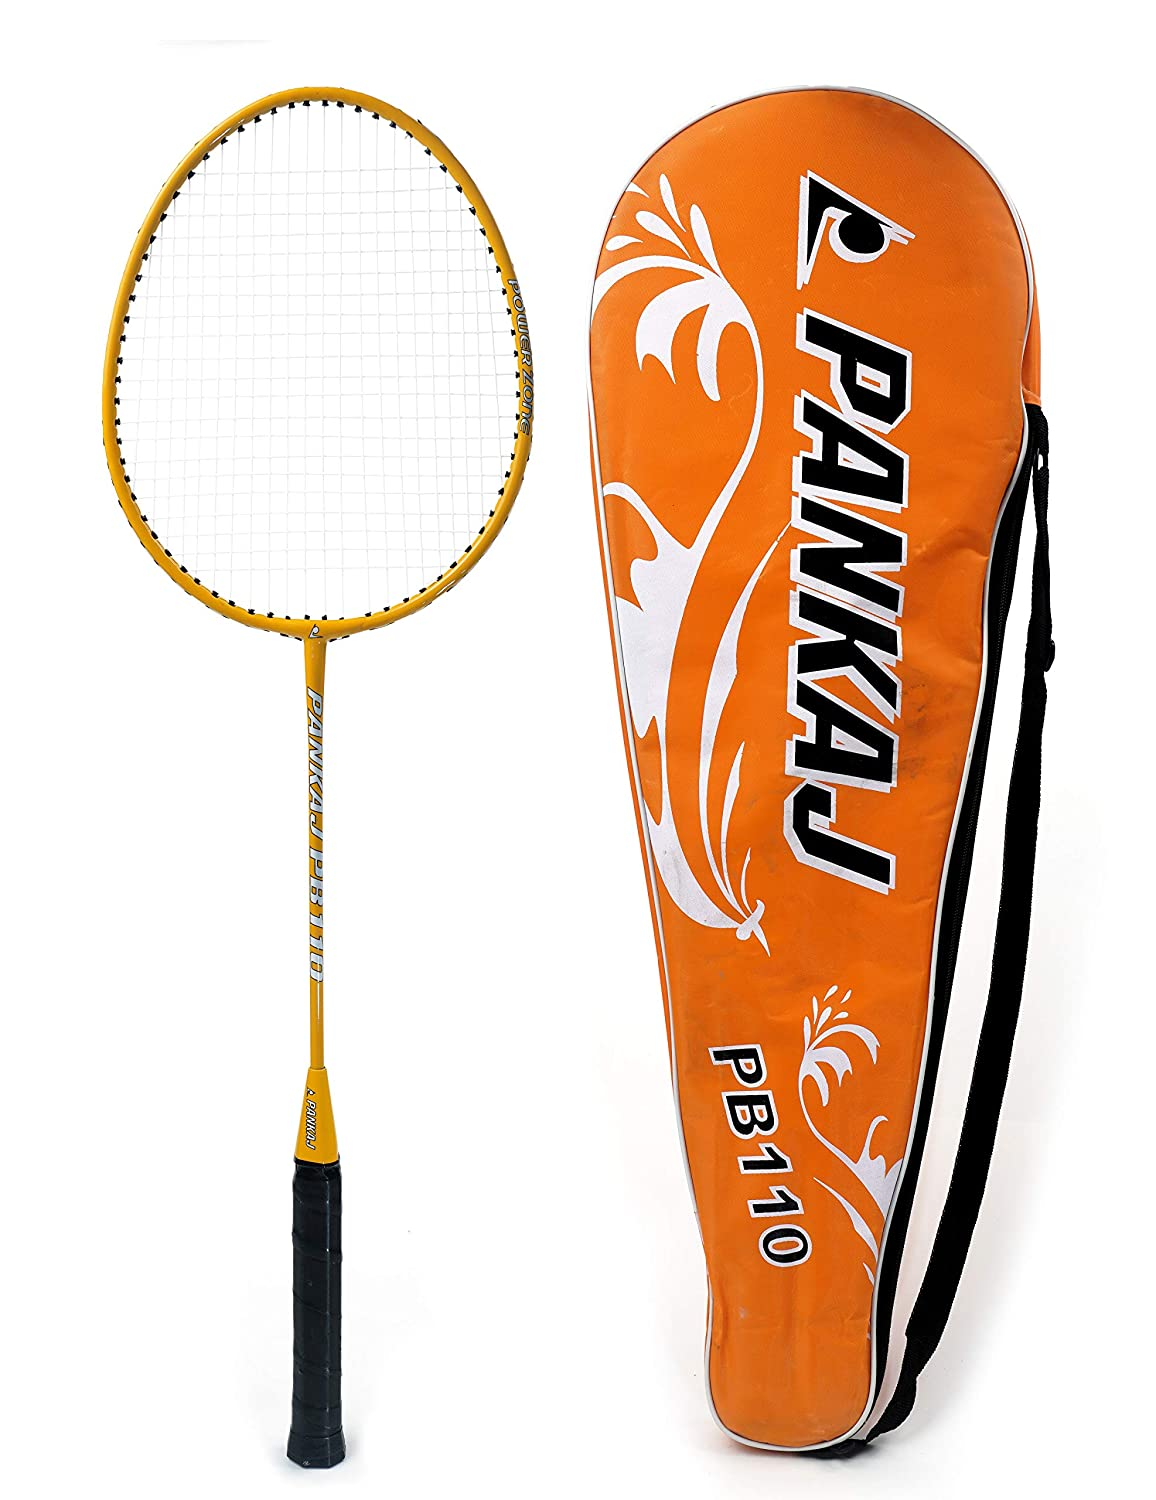 Badminton Rackets - PB 110 - Pack for 2 (Orange)